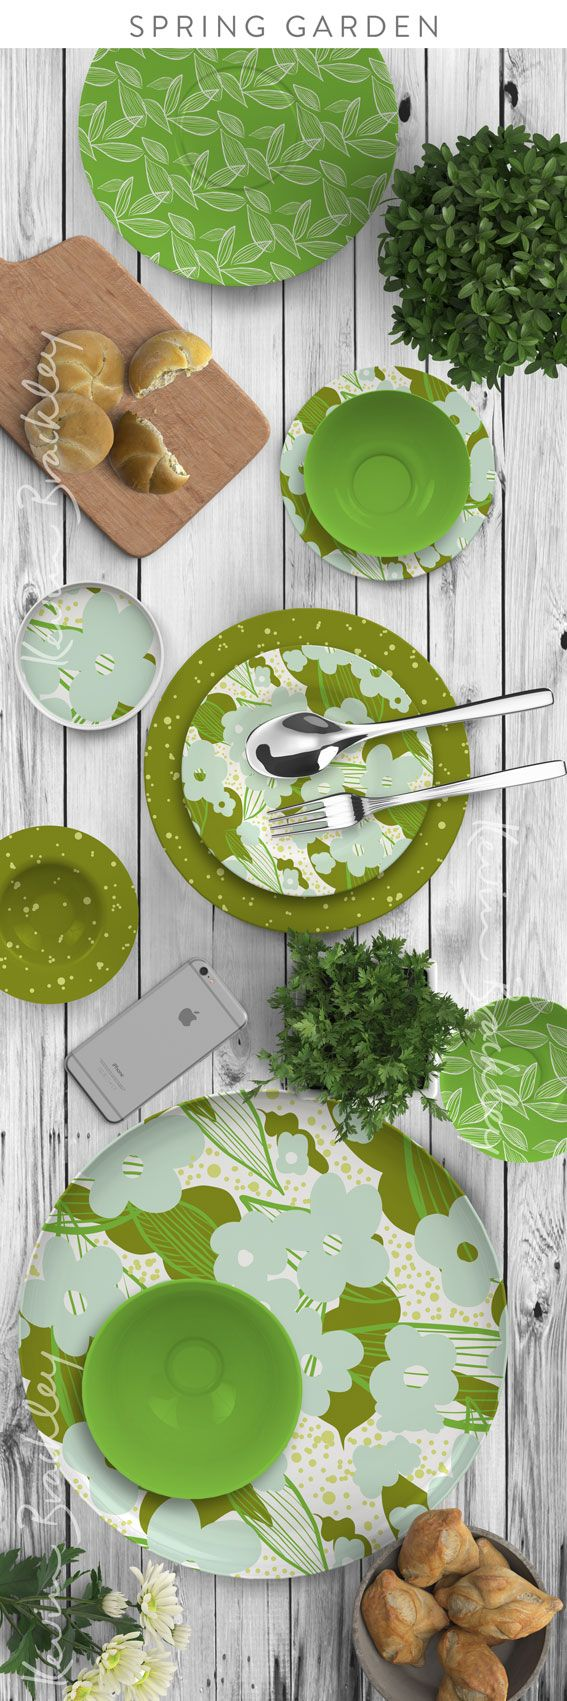 Tabletop concepts in my Spring Garden collection